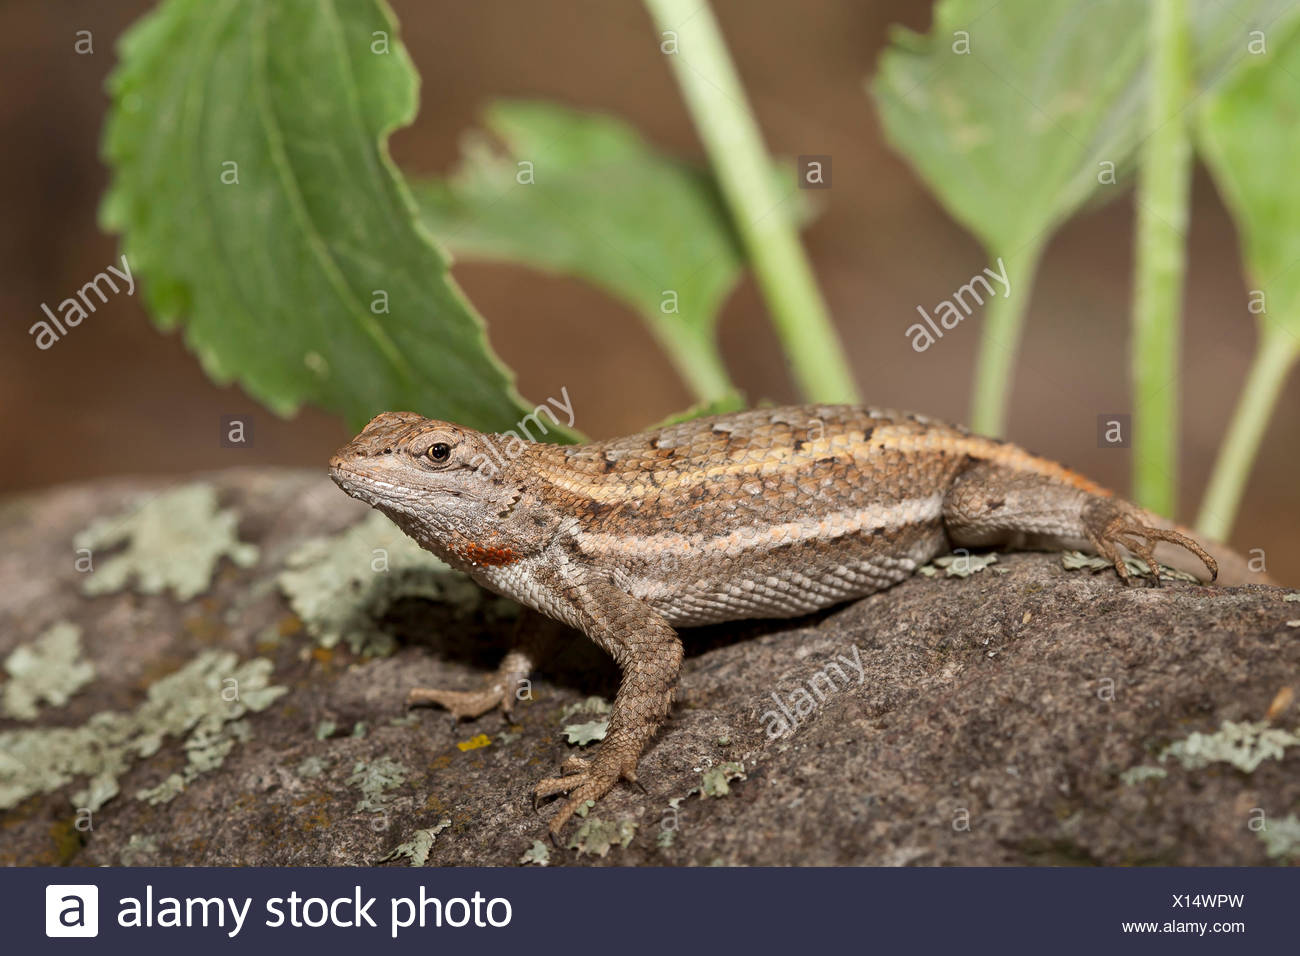 Striped Plateau Lizard, Sceloporus virgatus, Arizona, USA Stock Photo